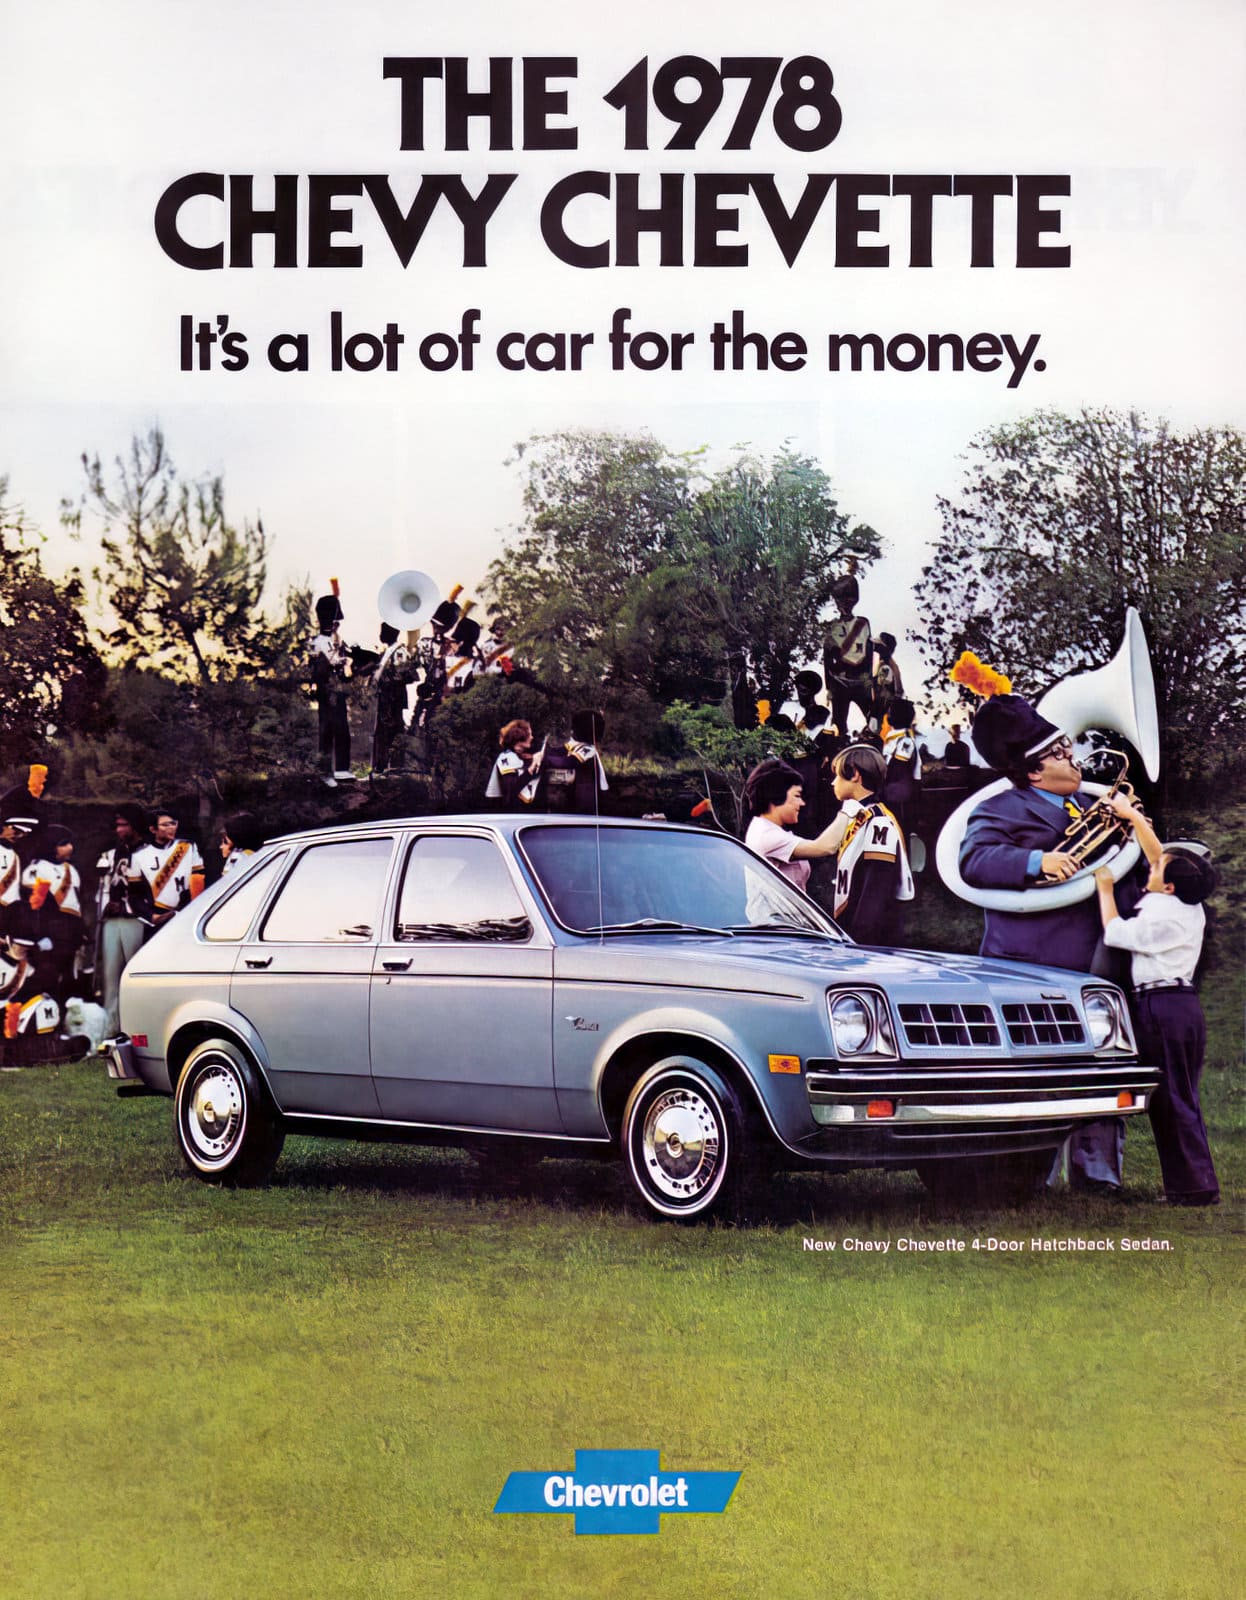 1978 Chevy Chevette 4-door hatchback sedan